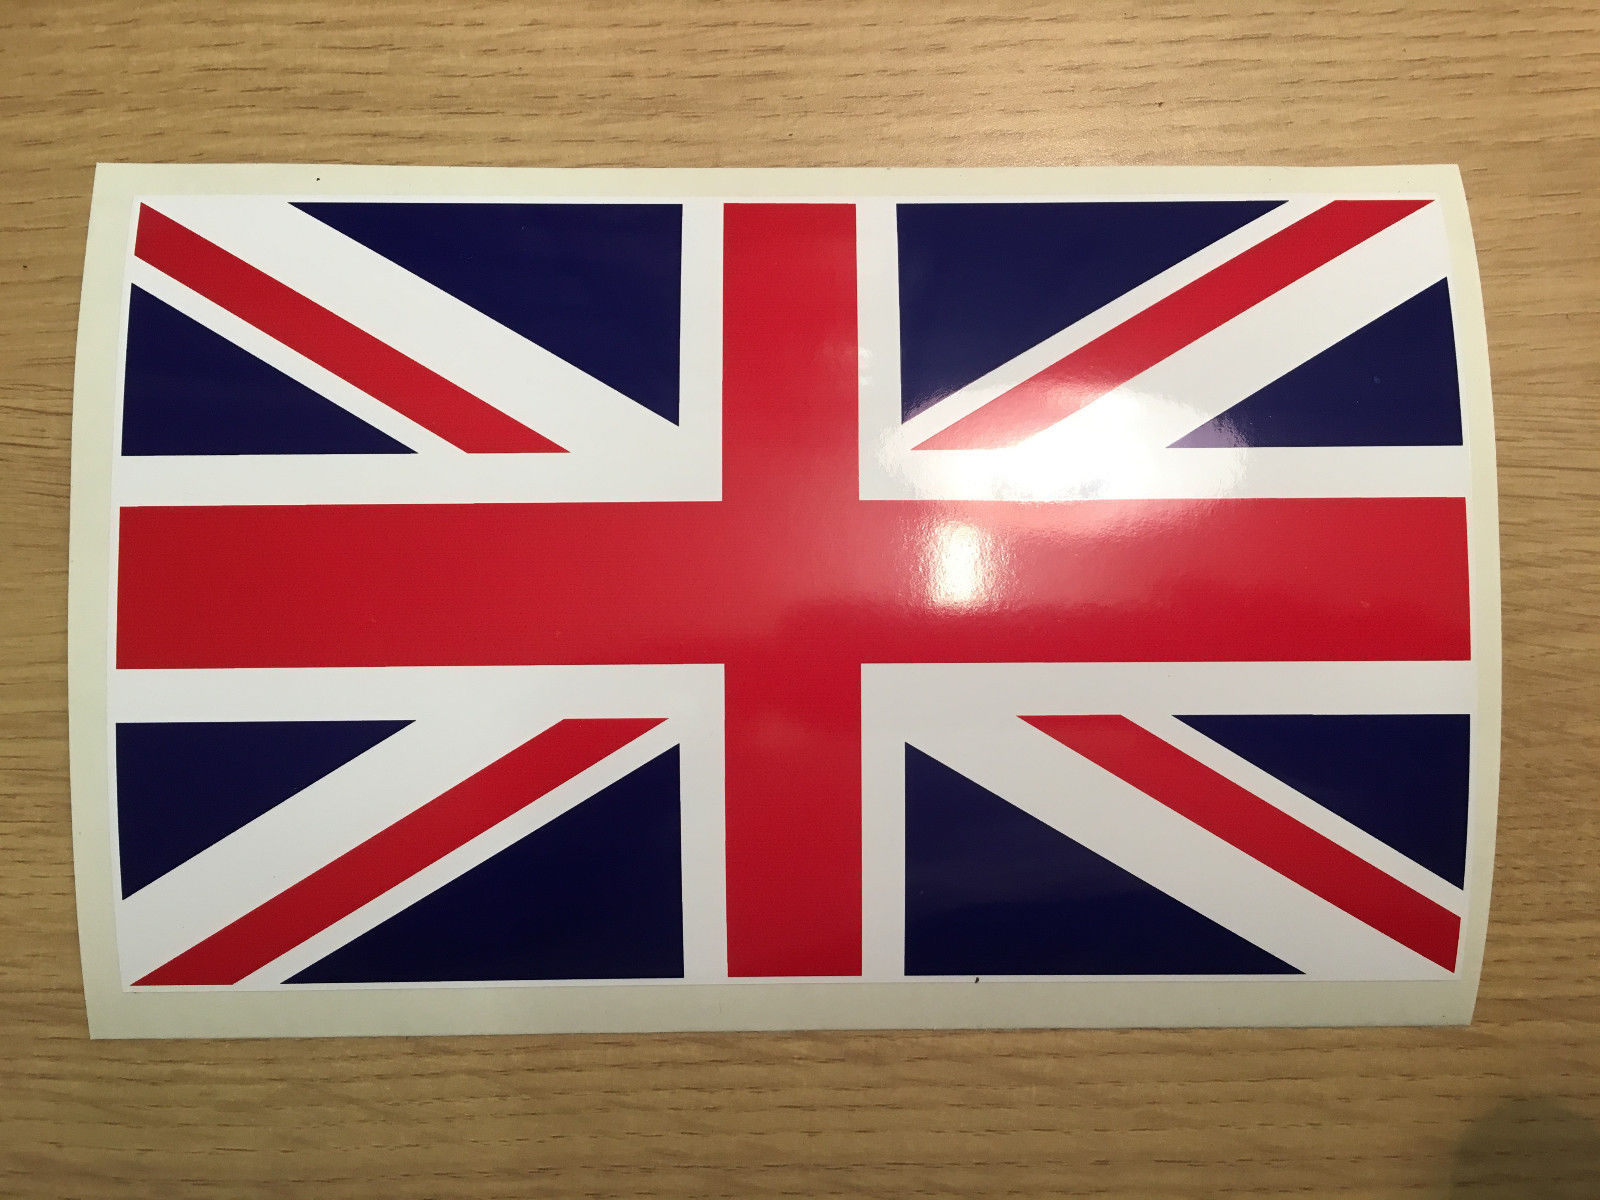 uk gb union jack flag vinyl sticker decal for your car. Black Bedroom Furniture Sets. Home Design Ideas